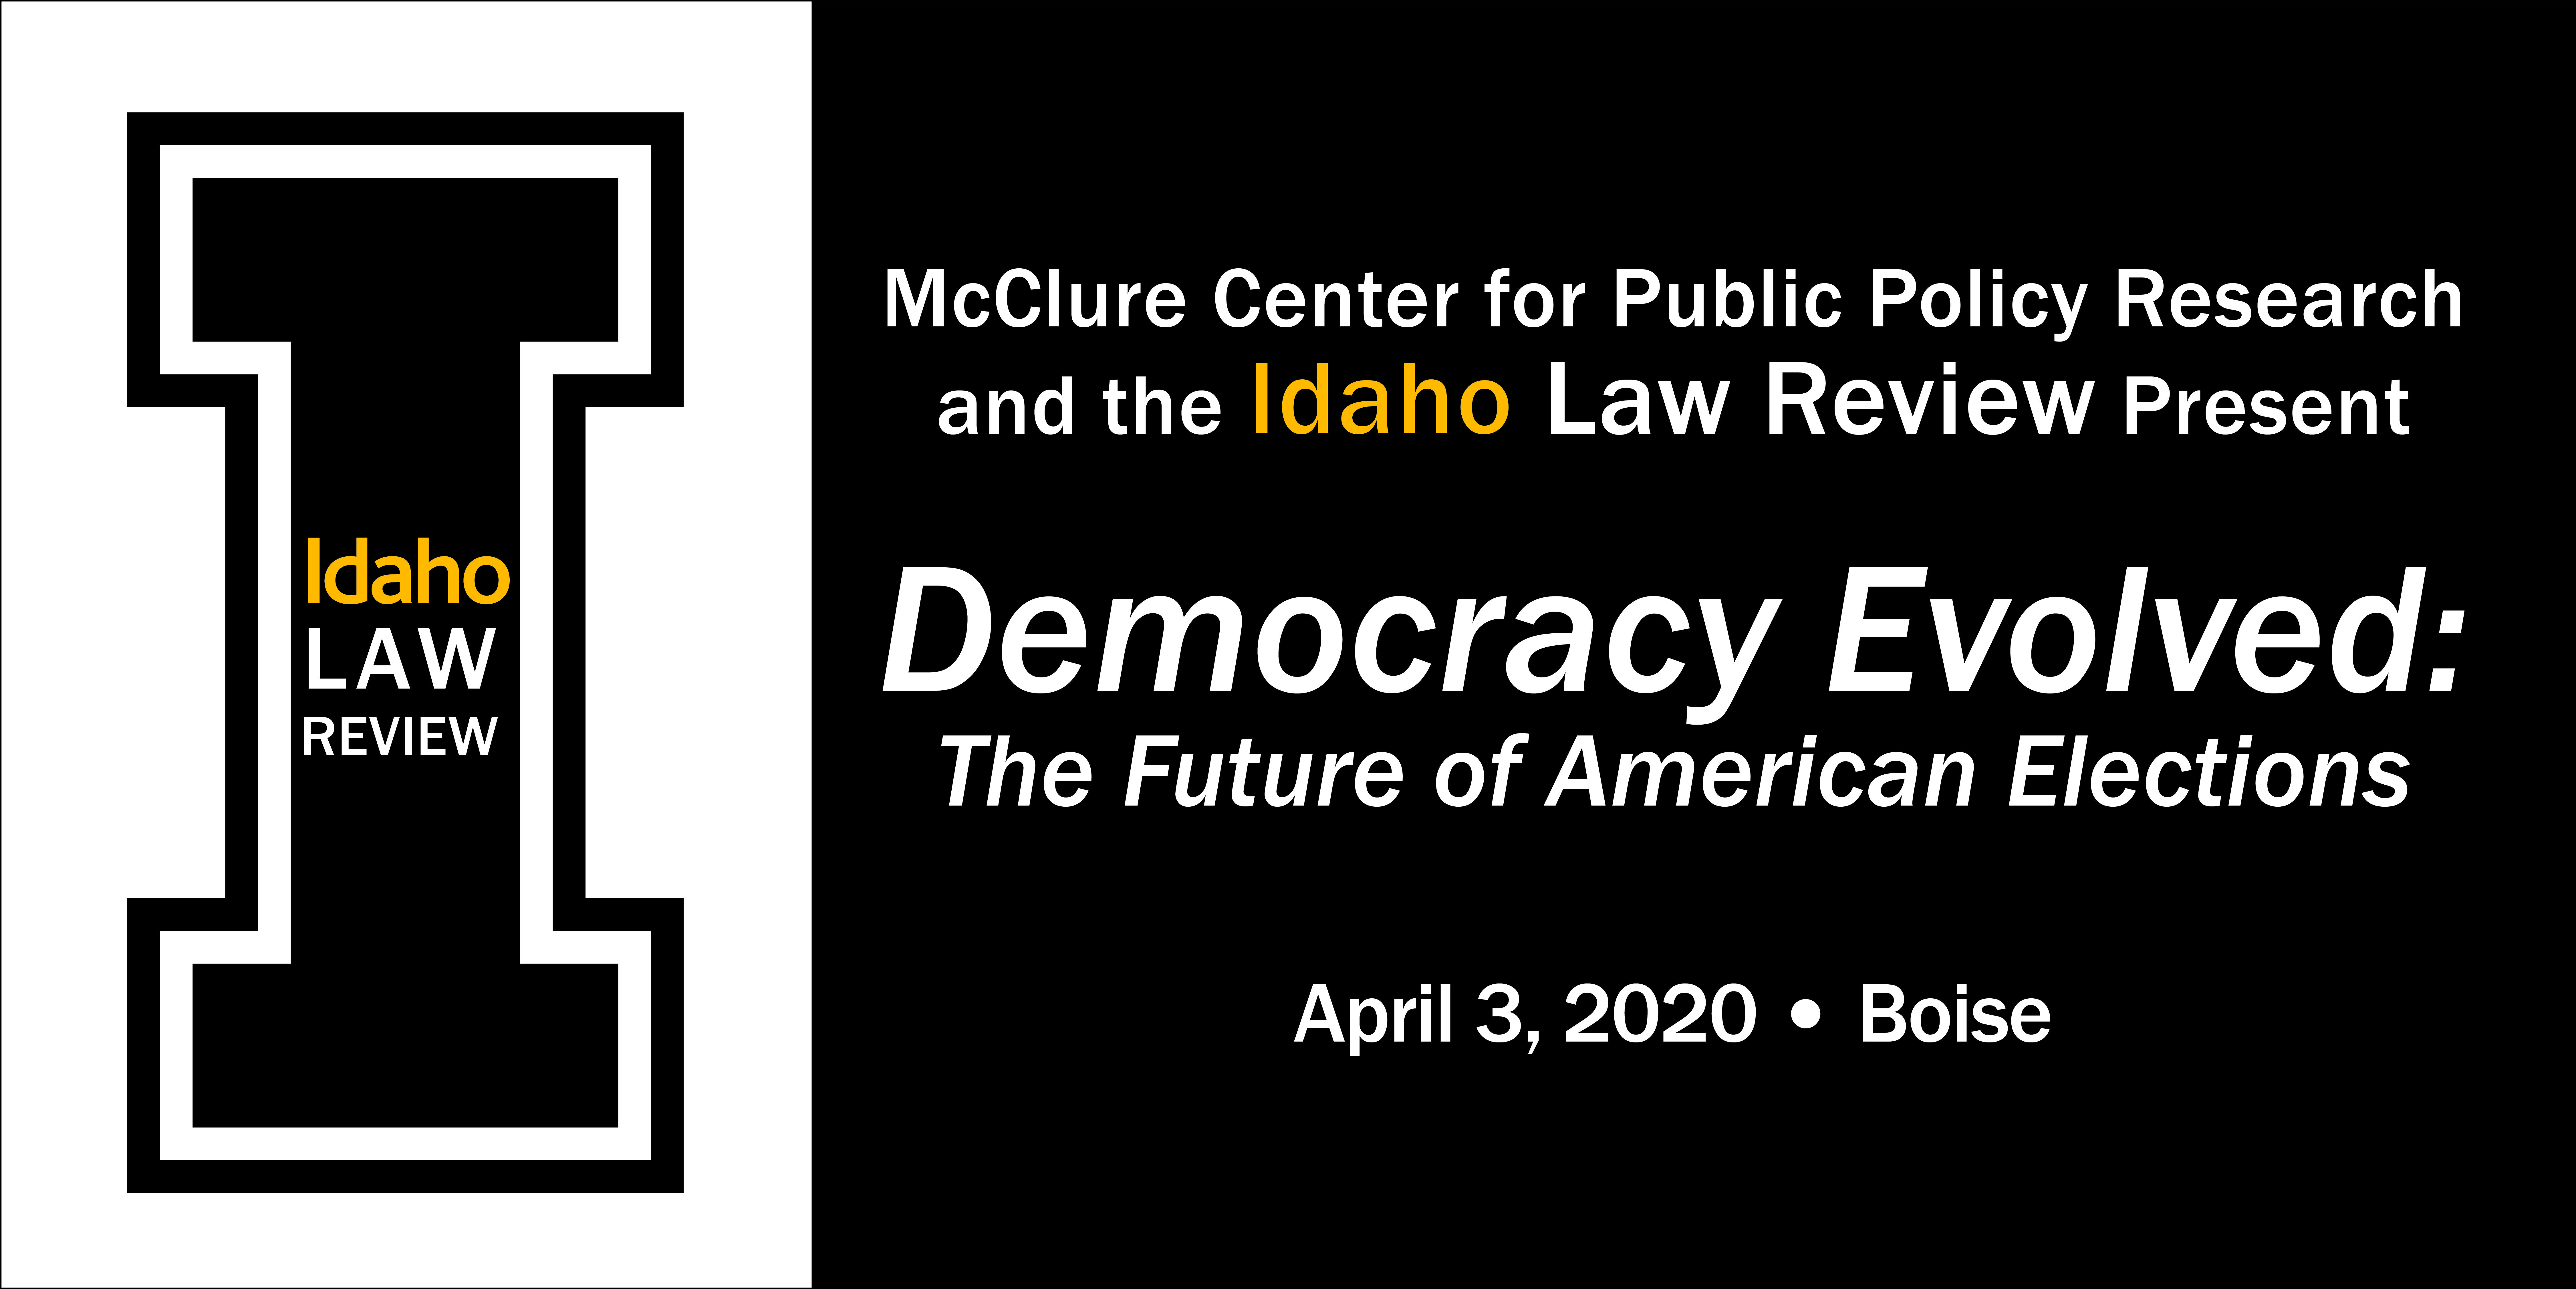 2020 ILR Symposium Democracy Evolved: The Future of American Elections